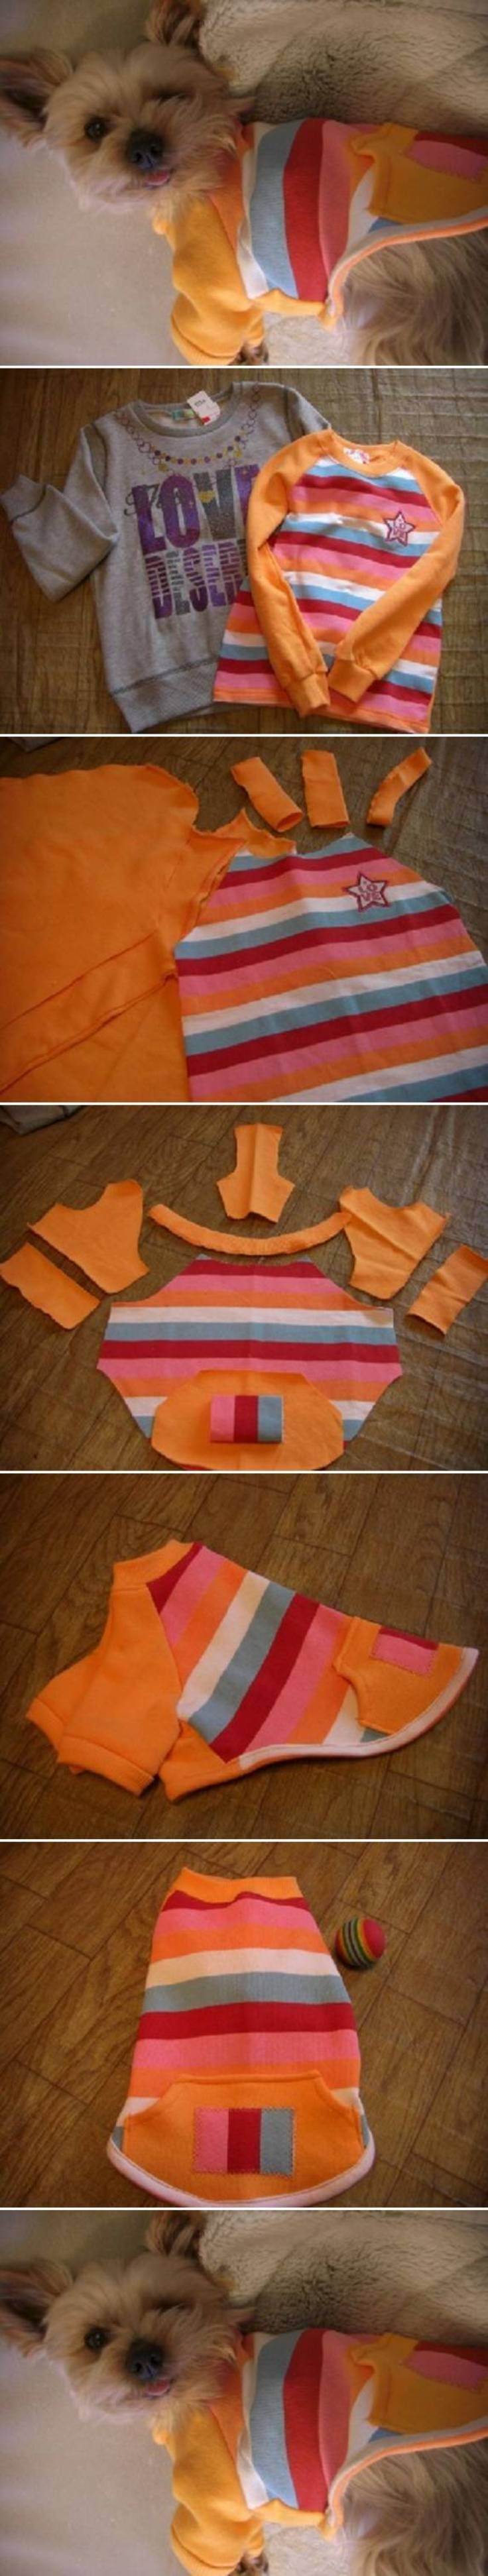 10 DIY Dog Clothes Ideas